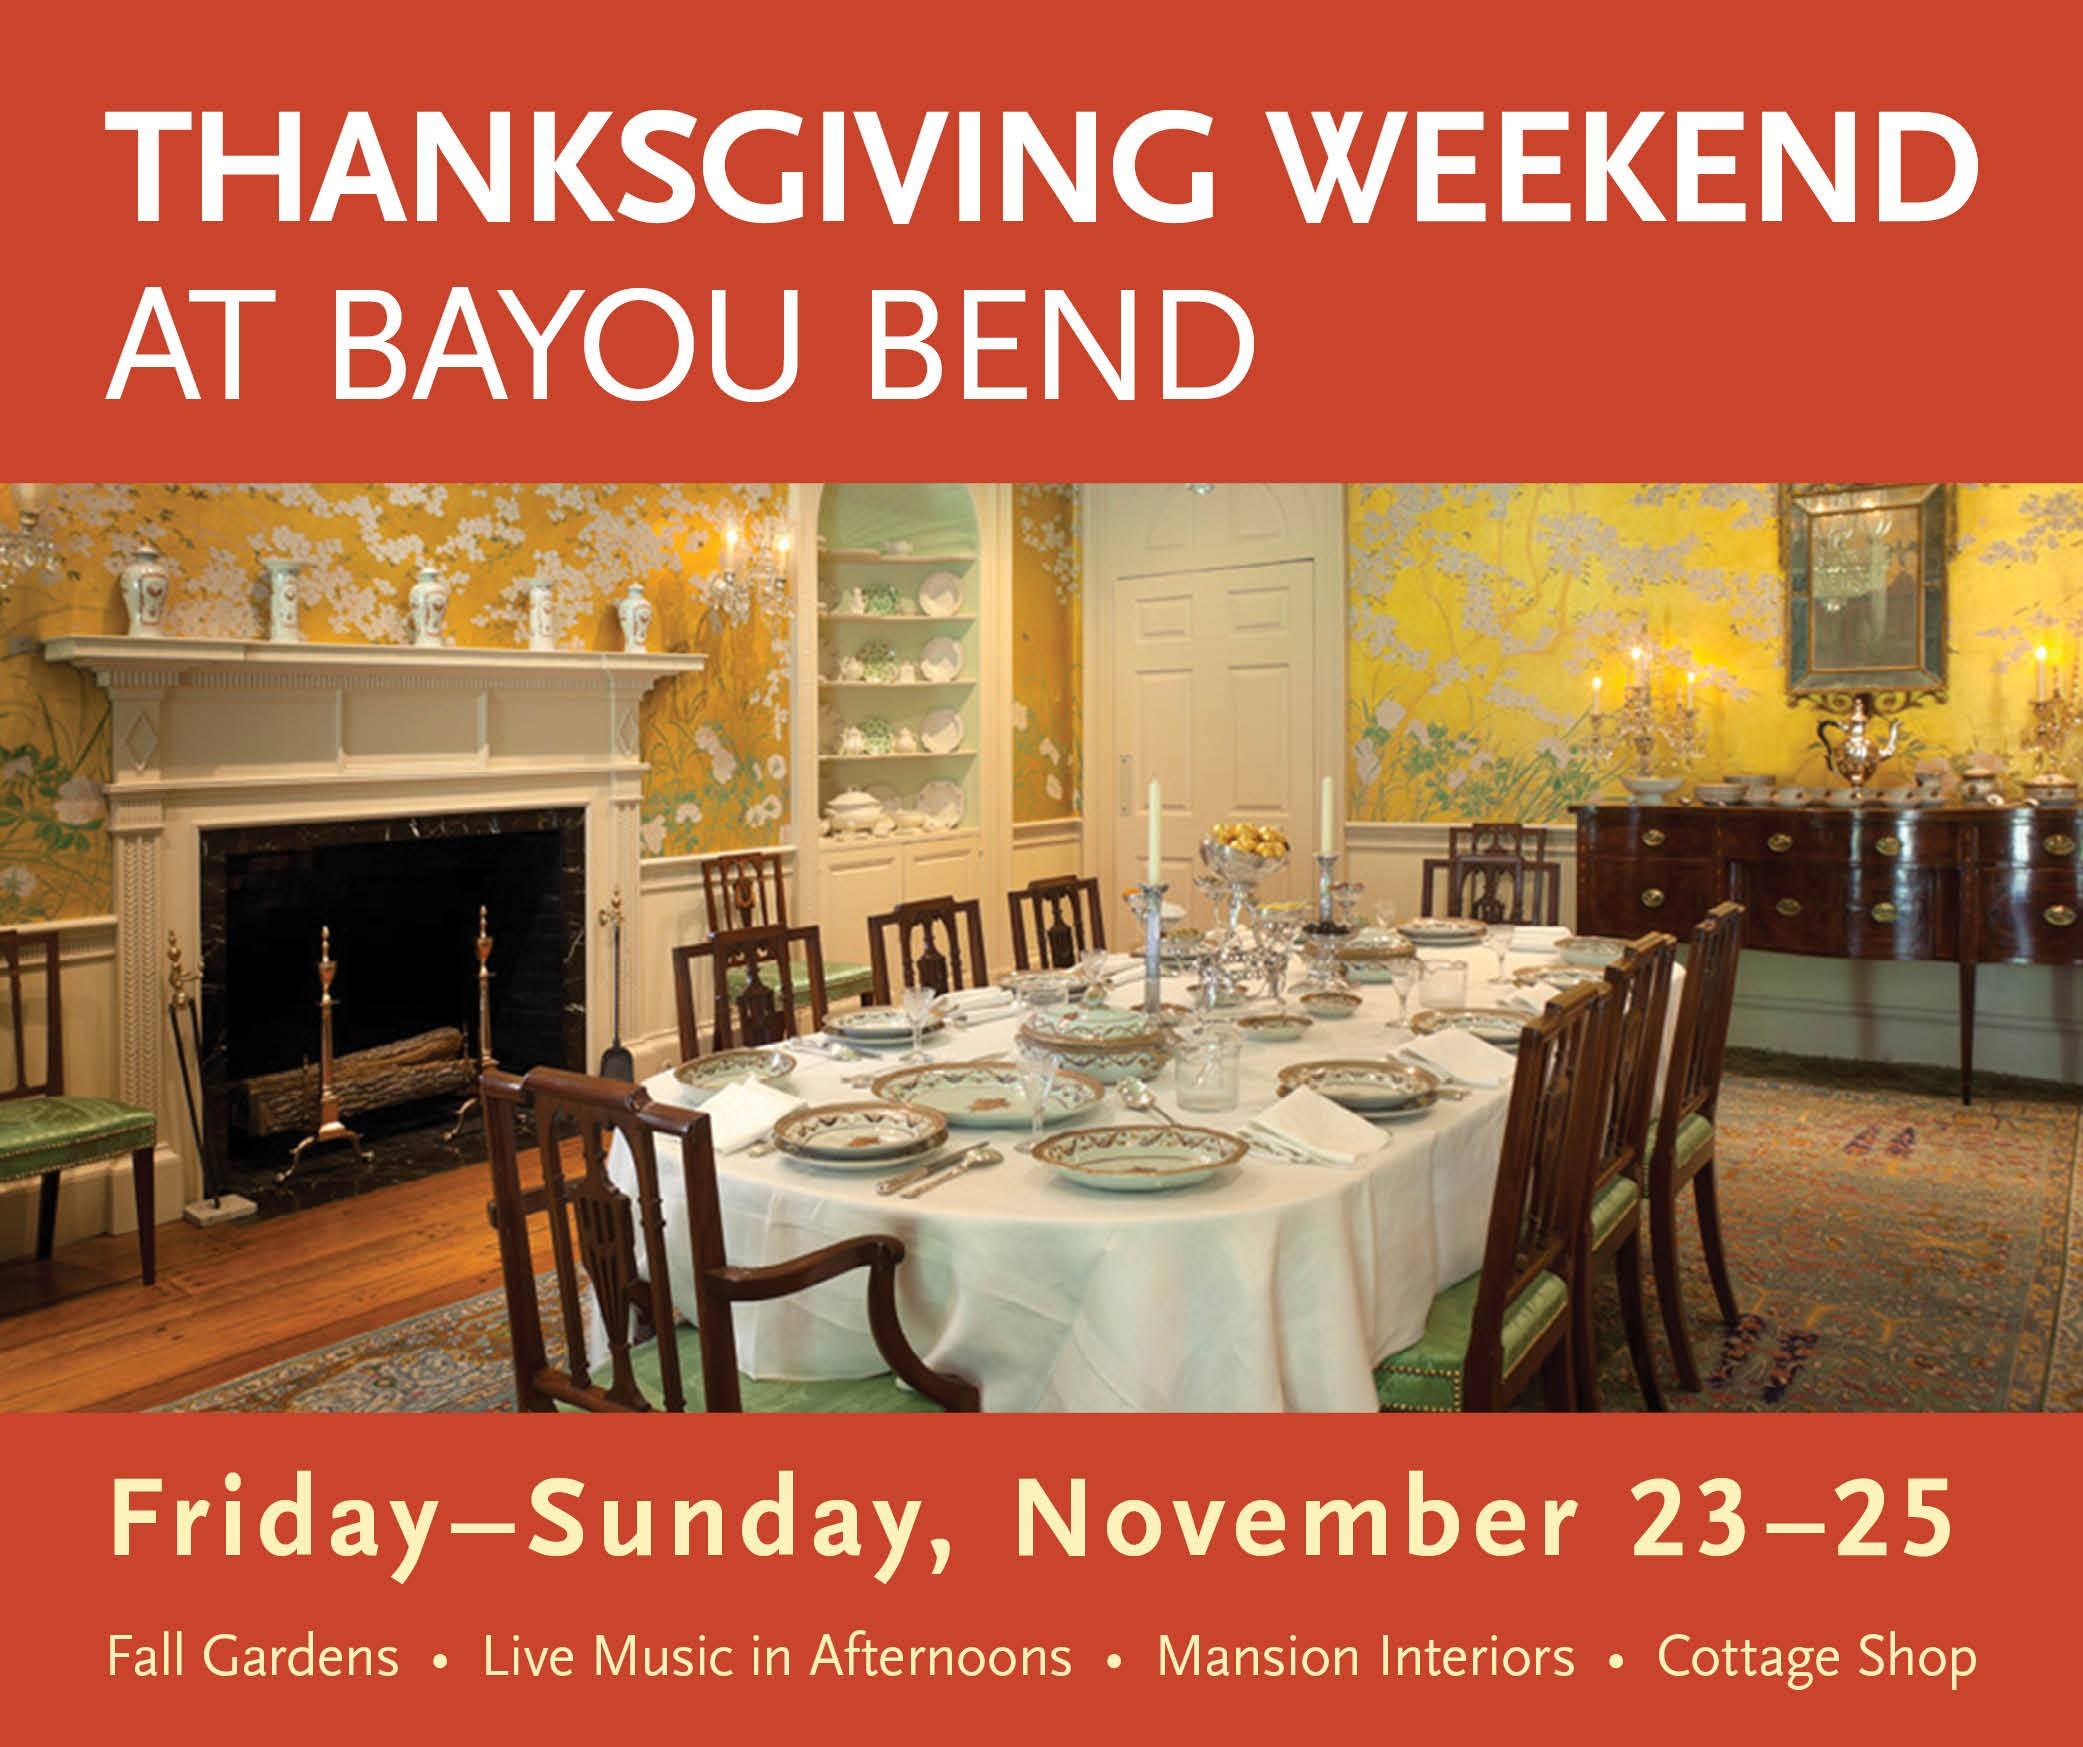 Thanksgiving Weekend at Bayou Bend 2018 graphic